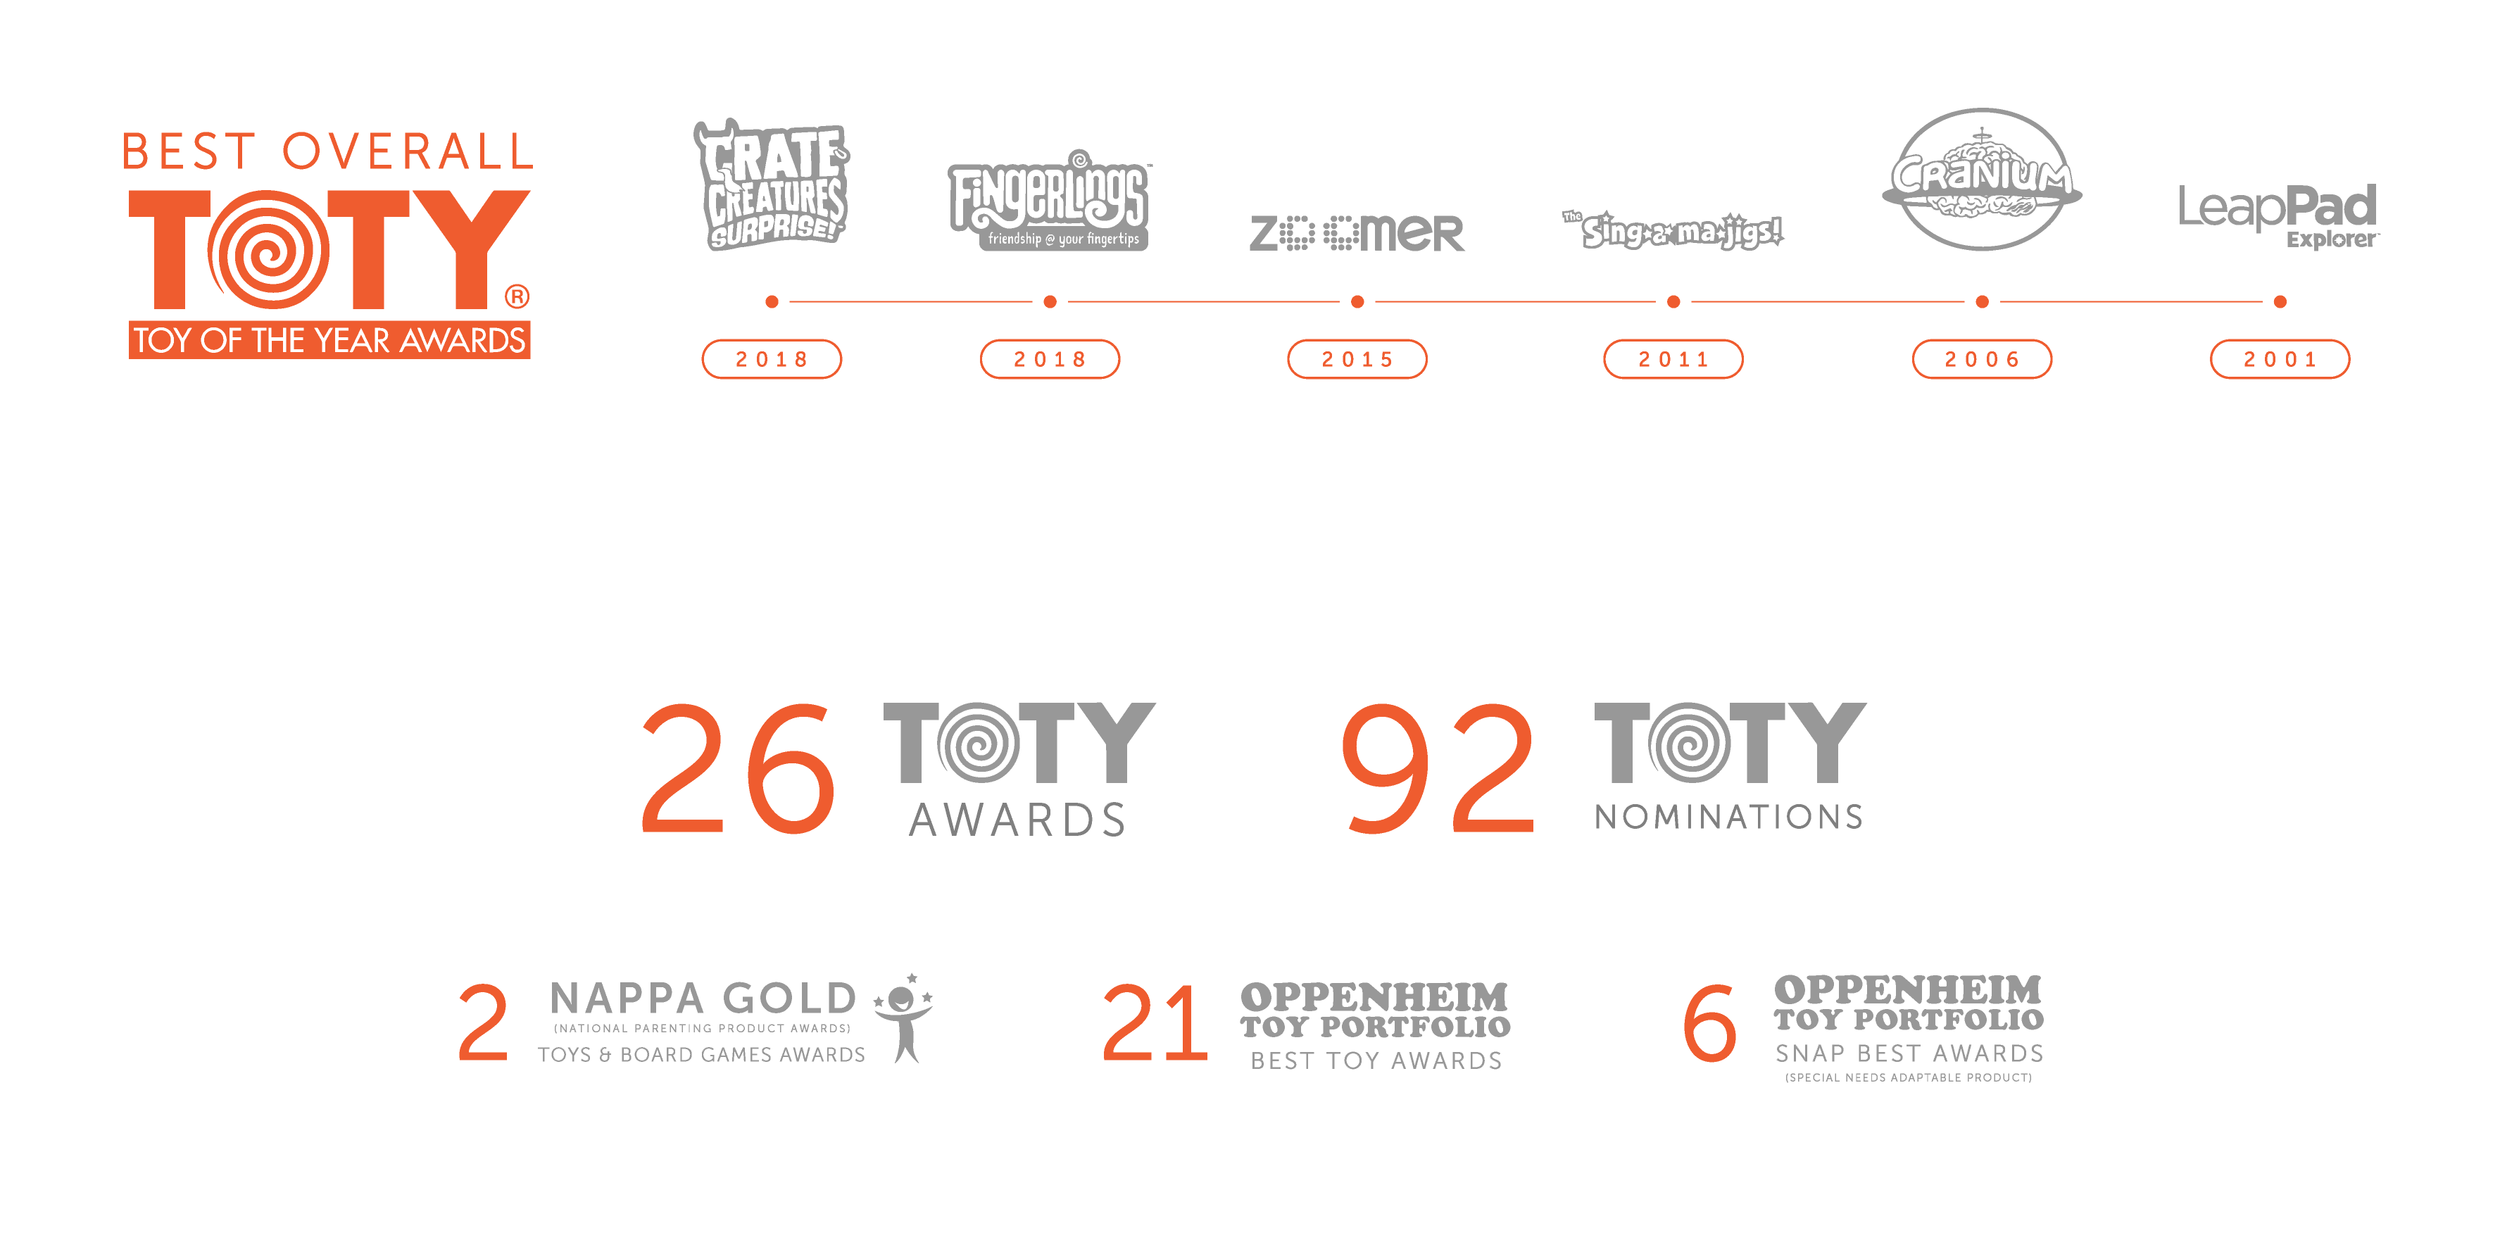 CreativityWebsite_Awards_v02a.png